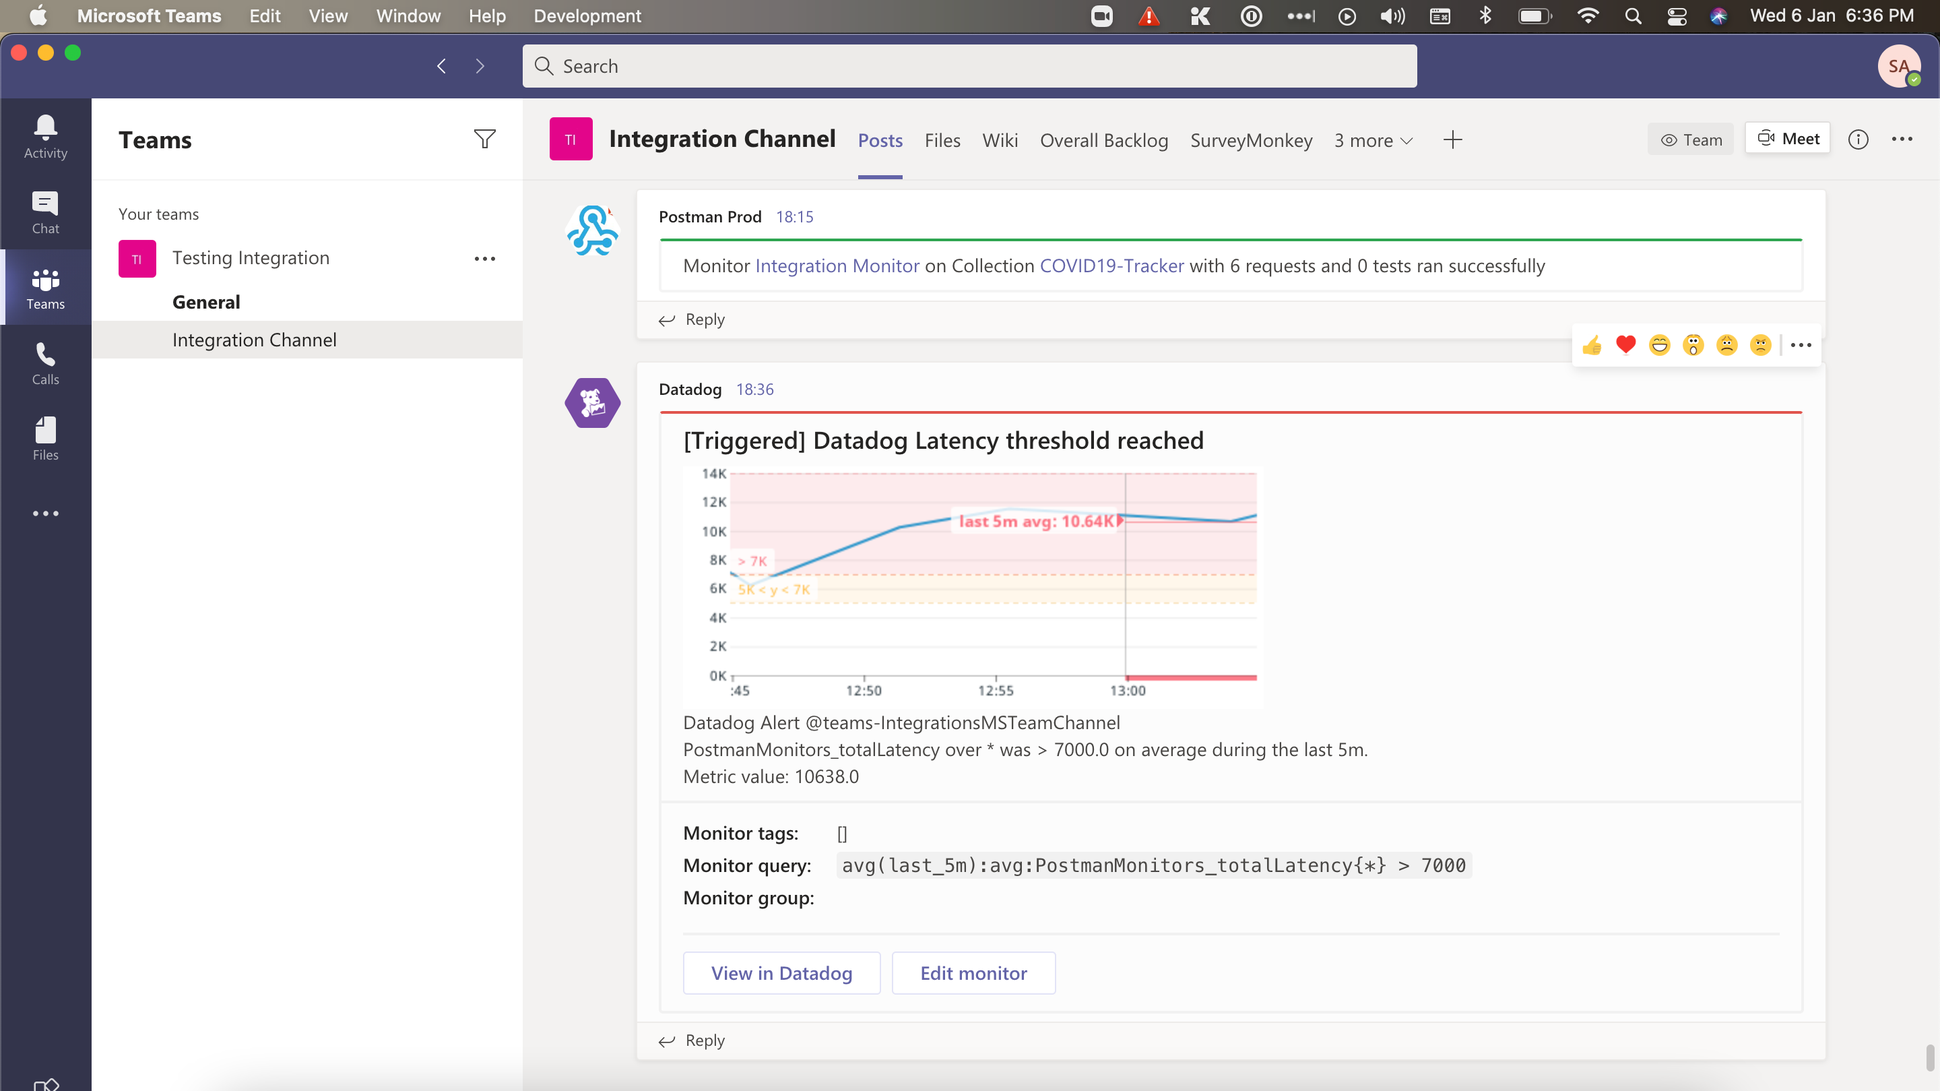 The alert as seen on Microsoft Teams